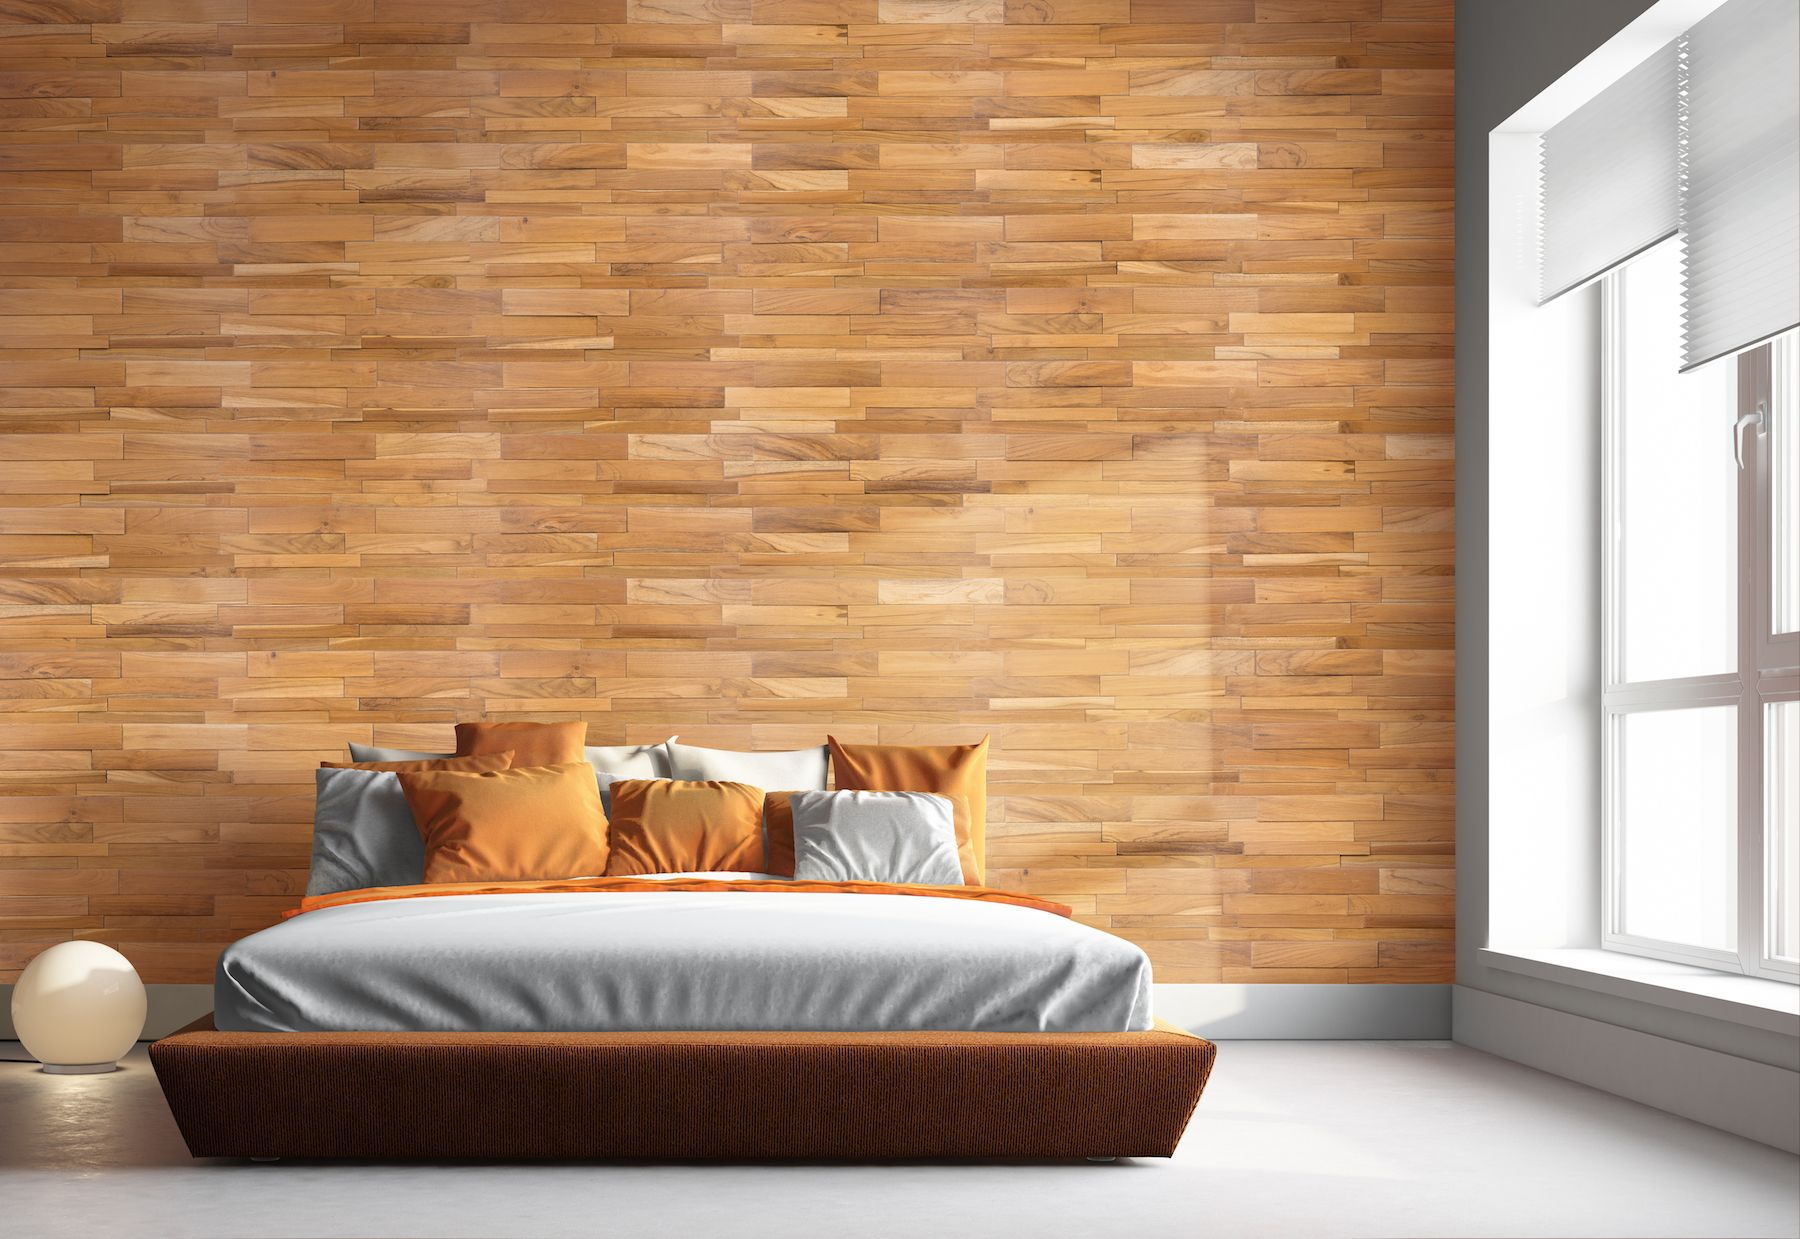 Indonesian Teak Wood Wall Cladding In Smooth Natural Finish Used On A Bedroom Wall Diy Freindly Easy To Install Usin Wood Wall Tiles Wall Cladding Wood Wall